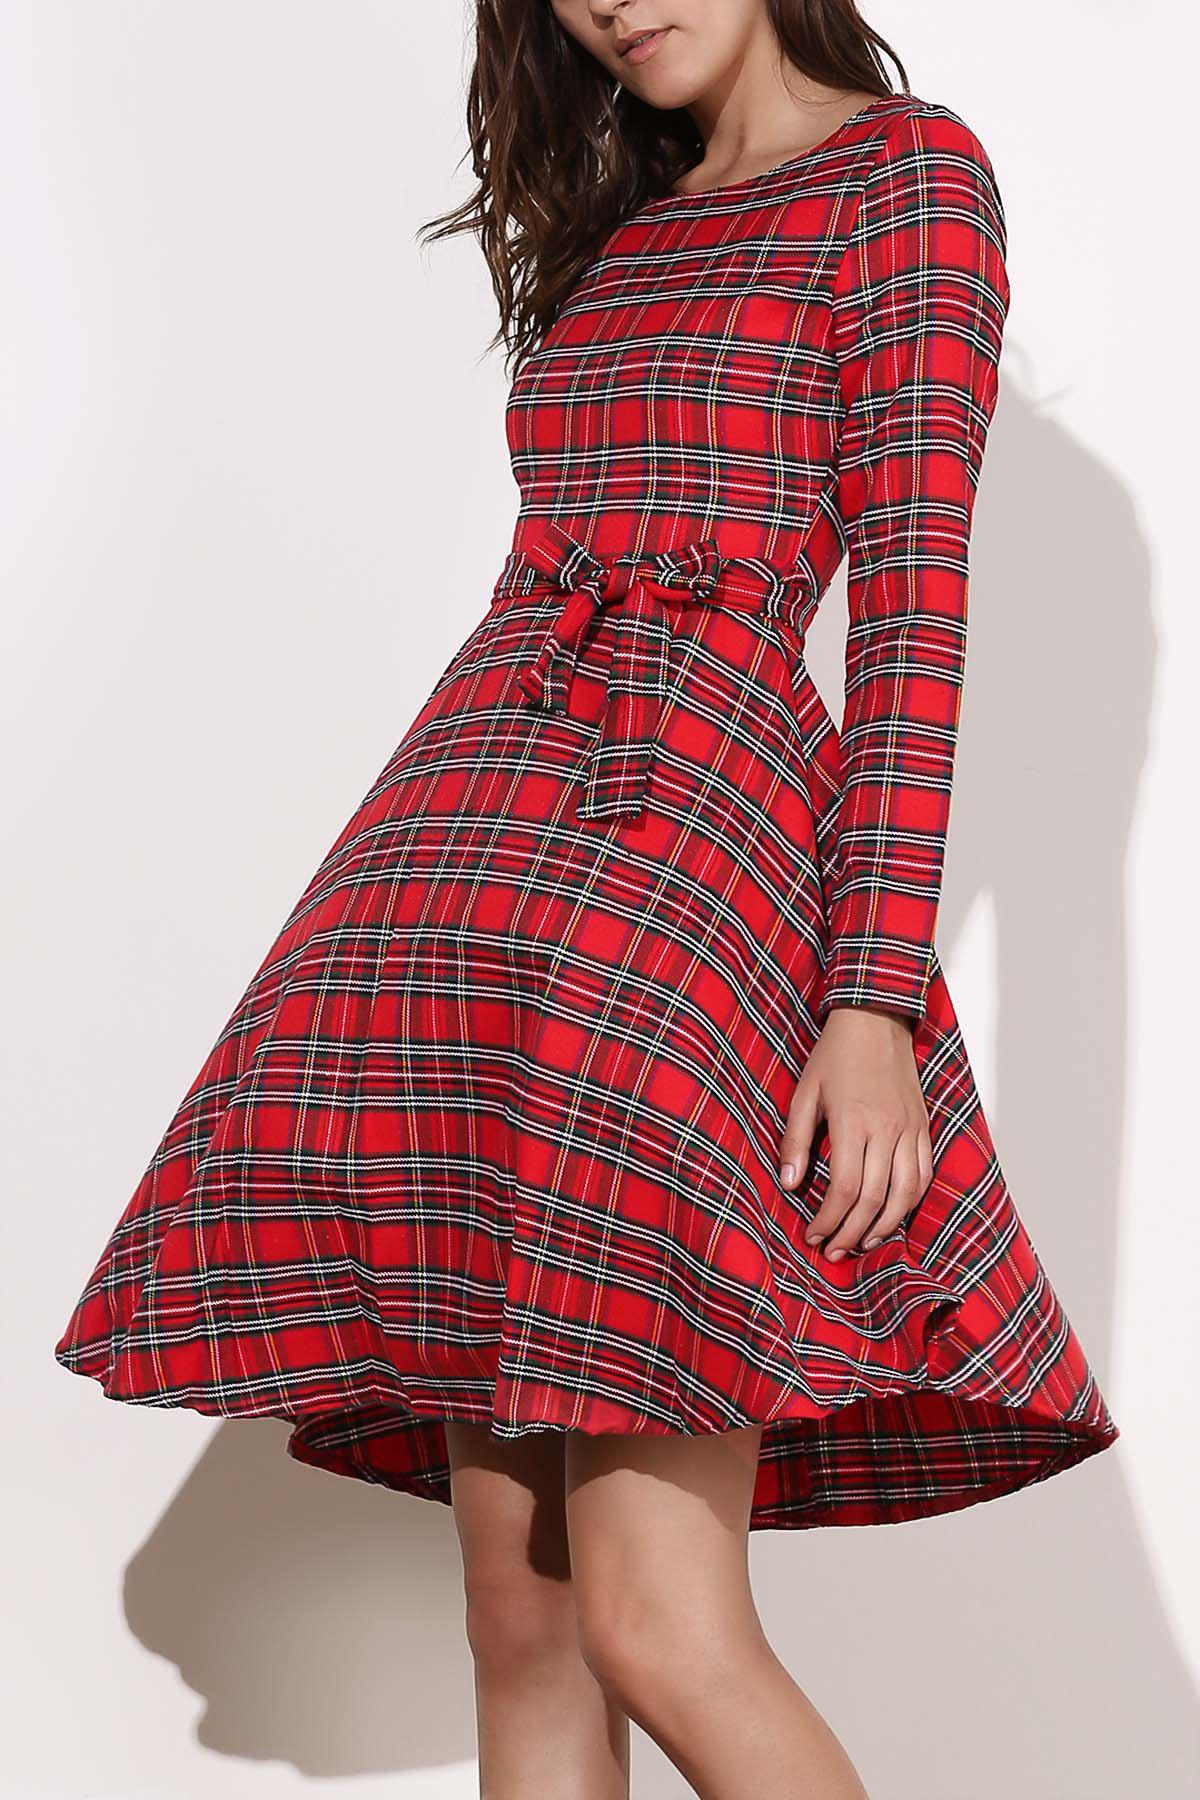 Vintage Women's Round Neck Long Sleeve Plaid Self-Tie Dress dark blue round neck plaid womens long sleeve dress